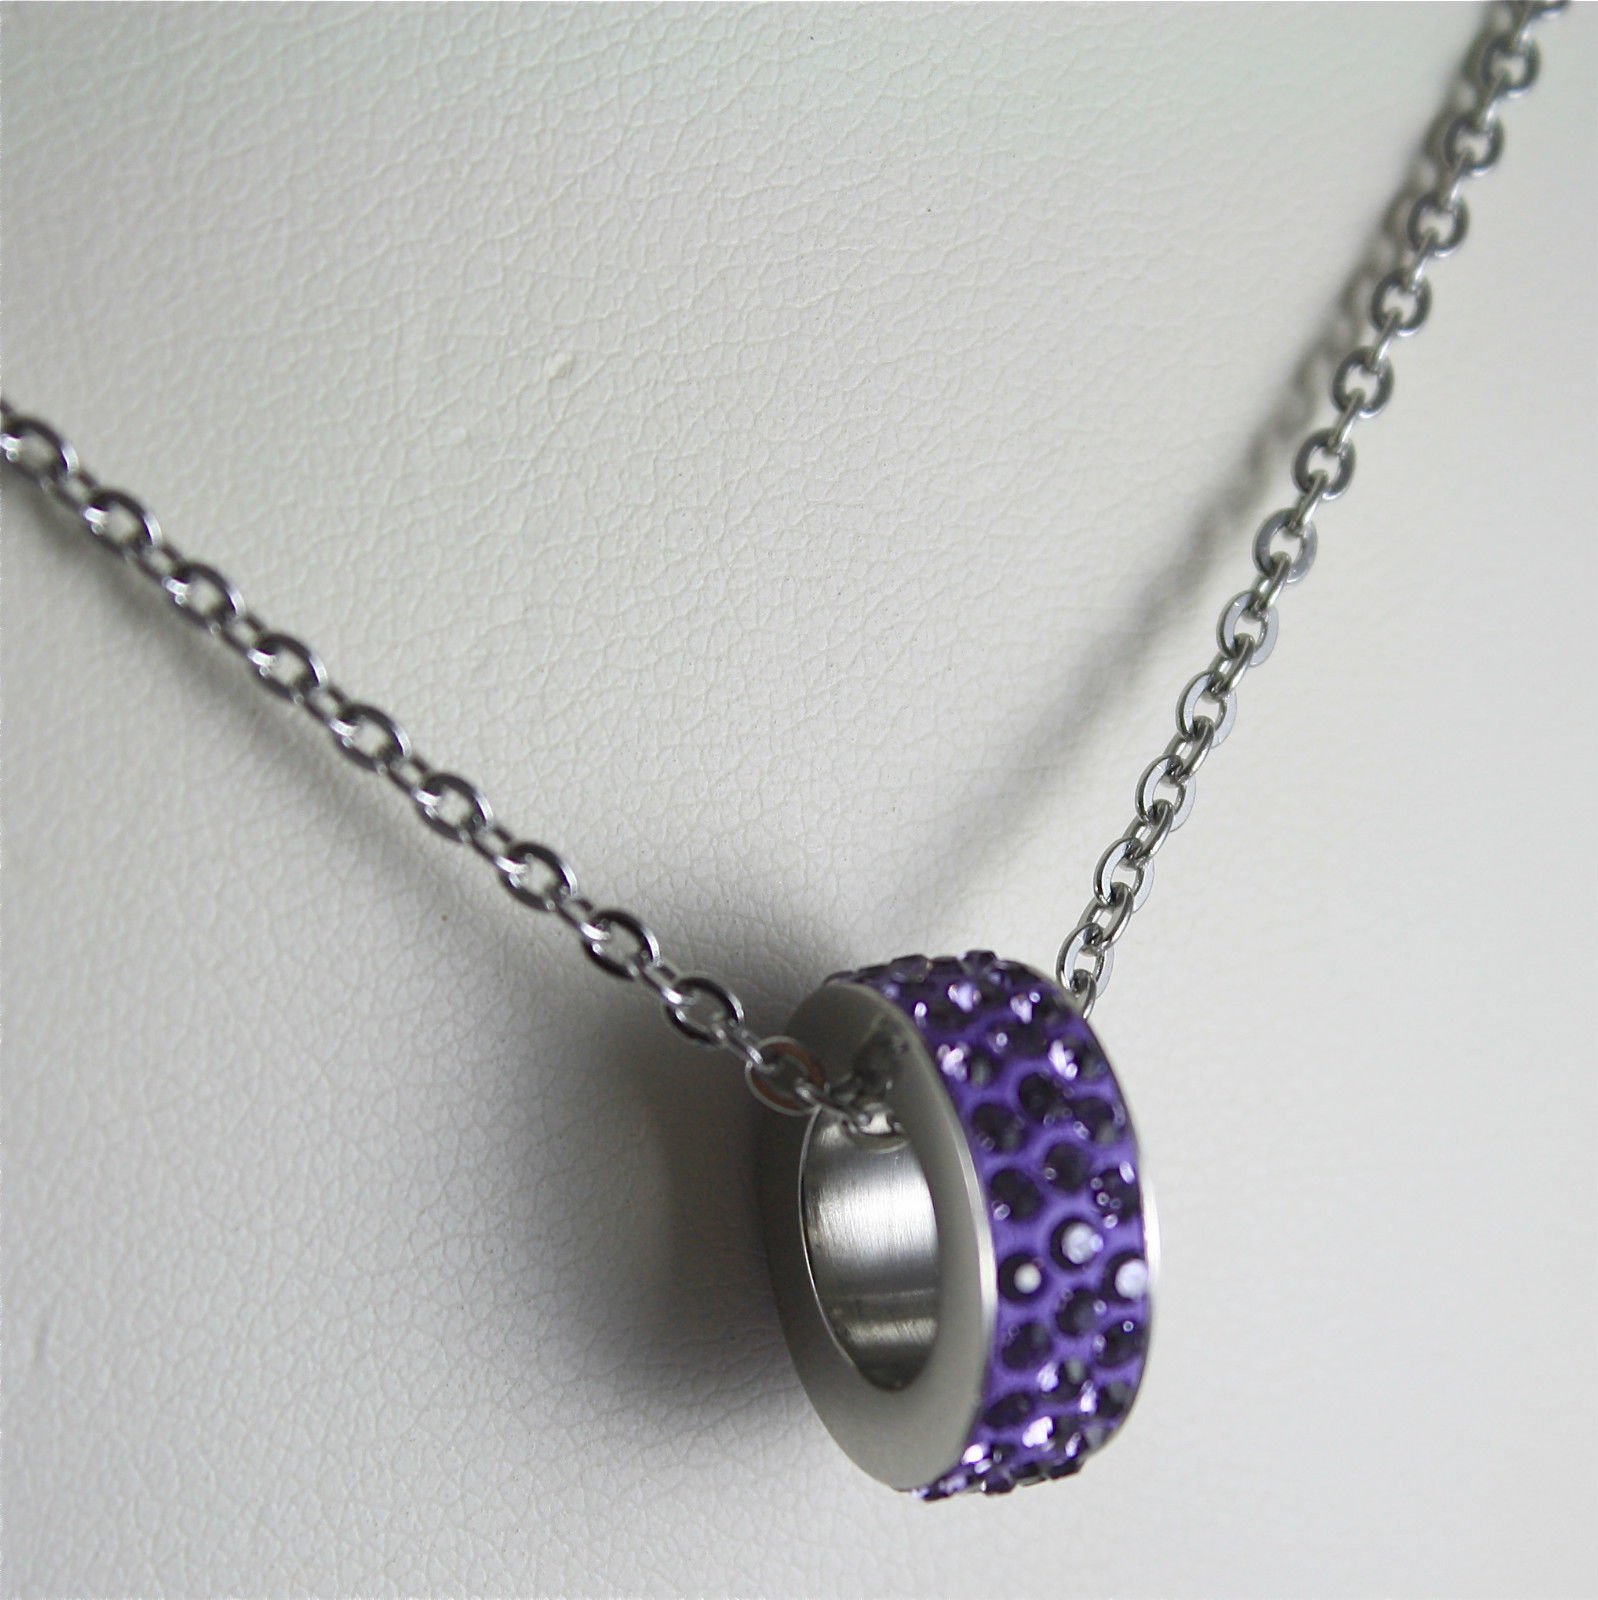 S'AGAPO' NECKLACE, 316L STEEL, PURPLE PENDANT WITH FACETED CRYSTALS.